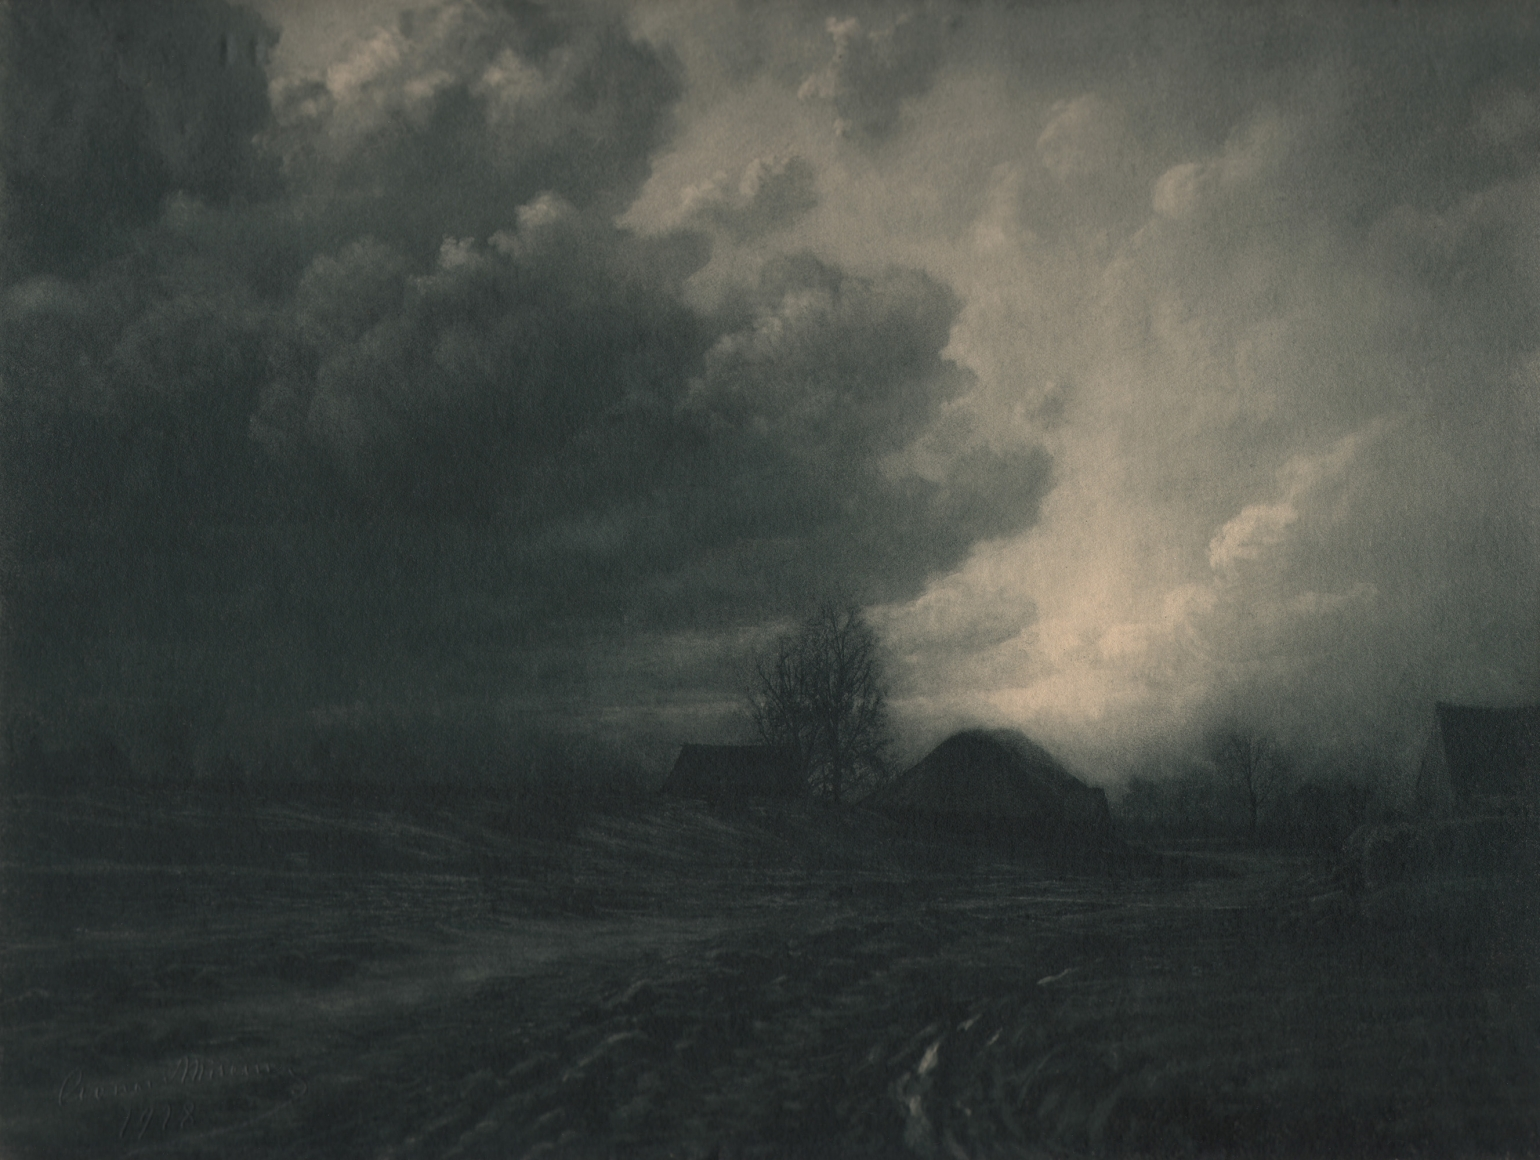 17. Léonard Misonne, Cumulus, 1928. Rural landscape with 2/3 of the frame occupied by clouds in dim light. Gray/green-toned print.